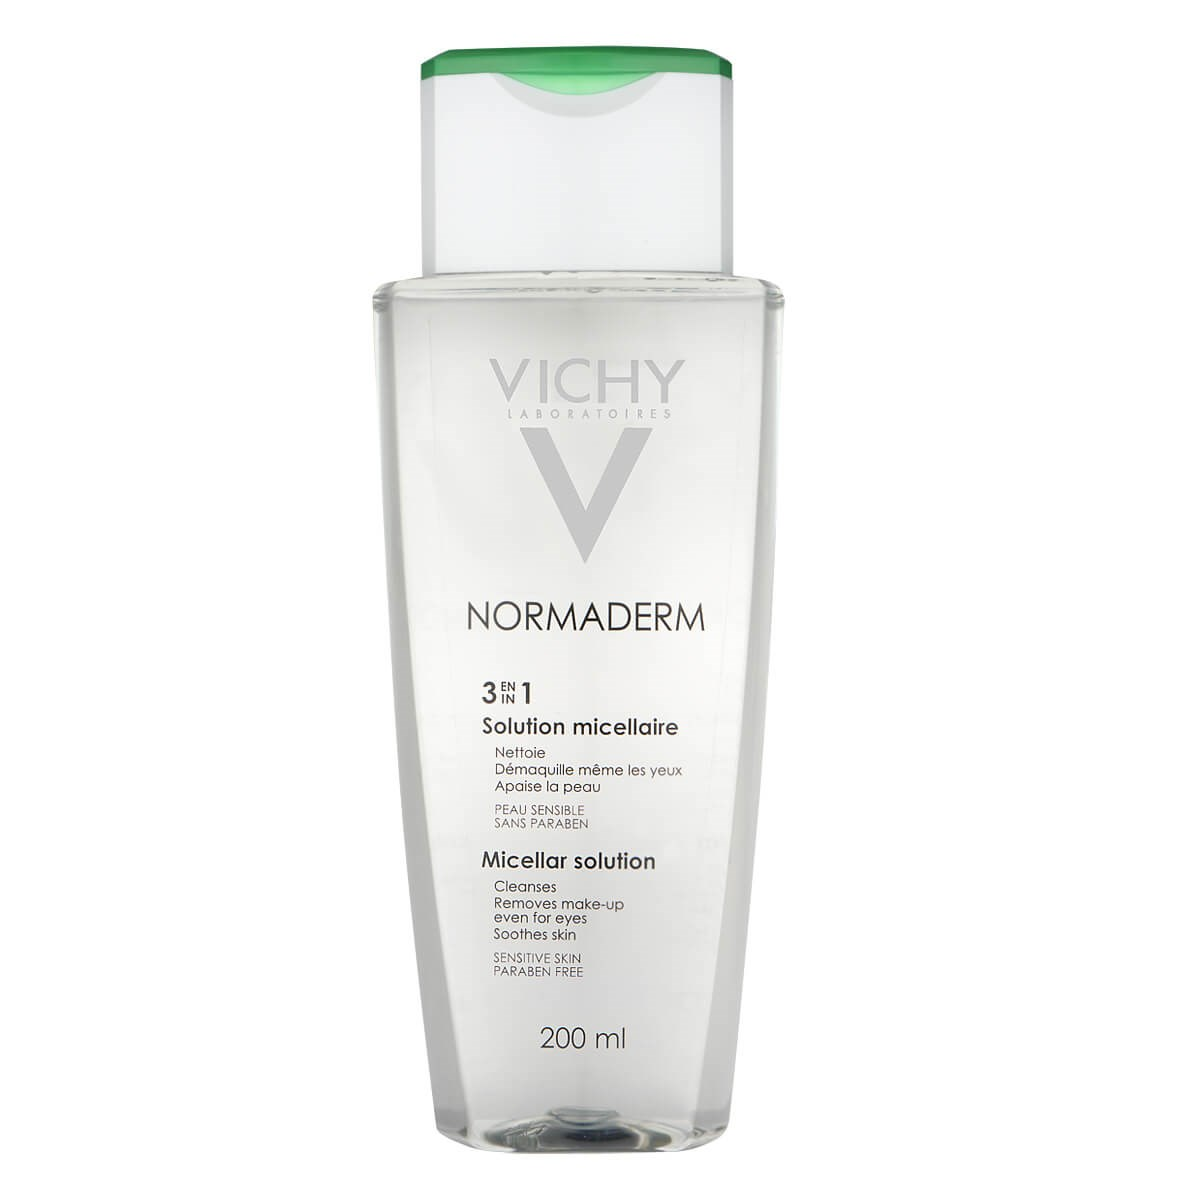 Vichy Normaderm 3-in-1 Micellar Solution